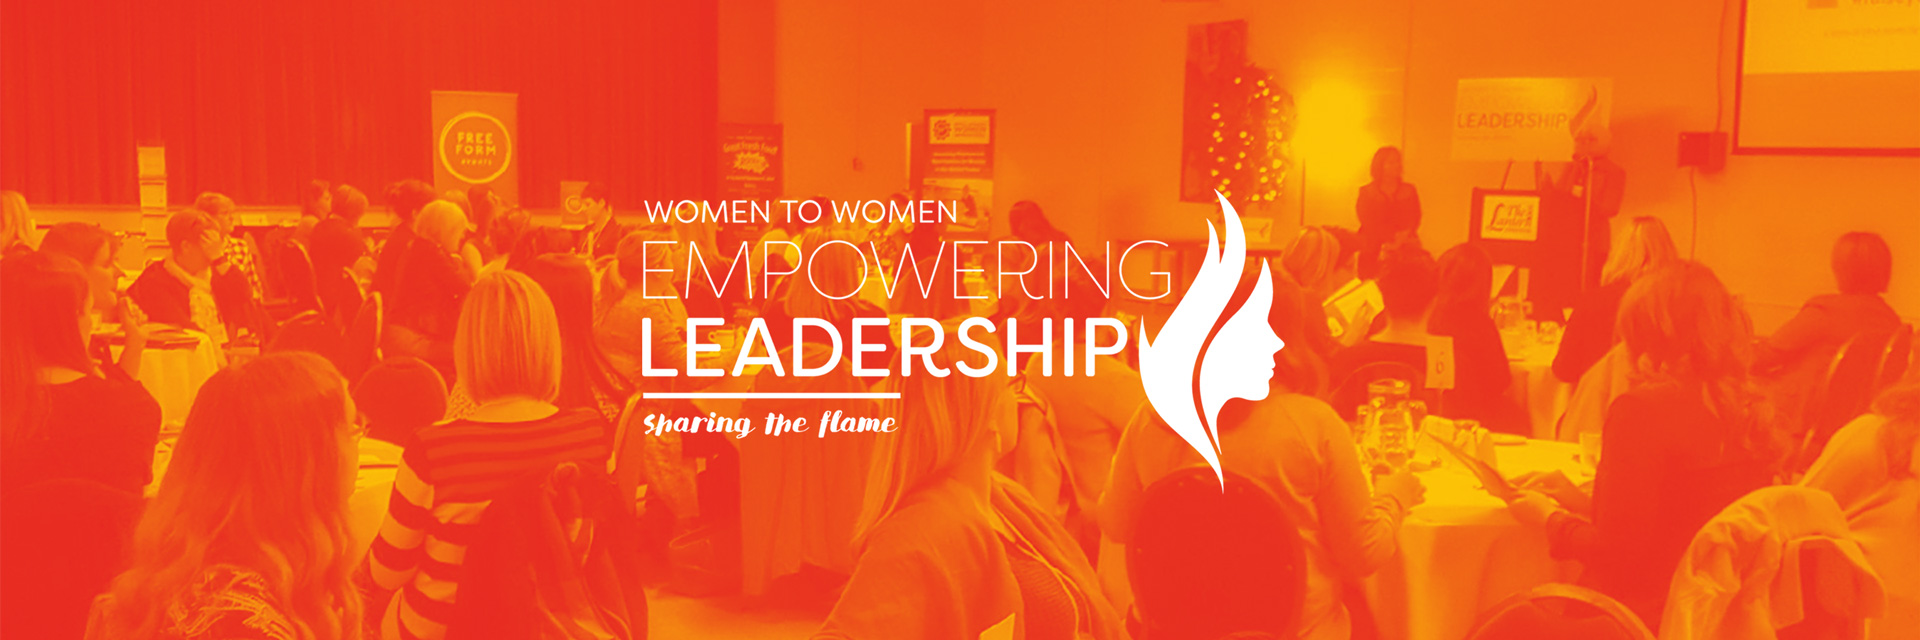 Women to Women: Empowering Leadership